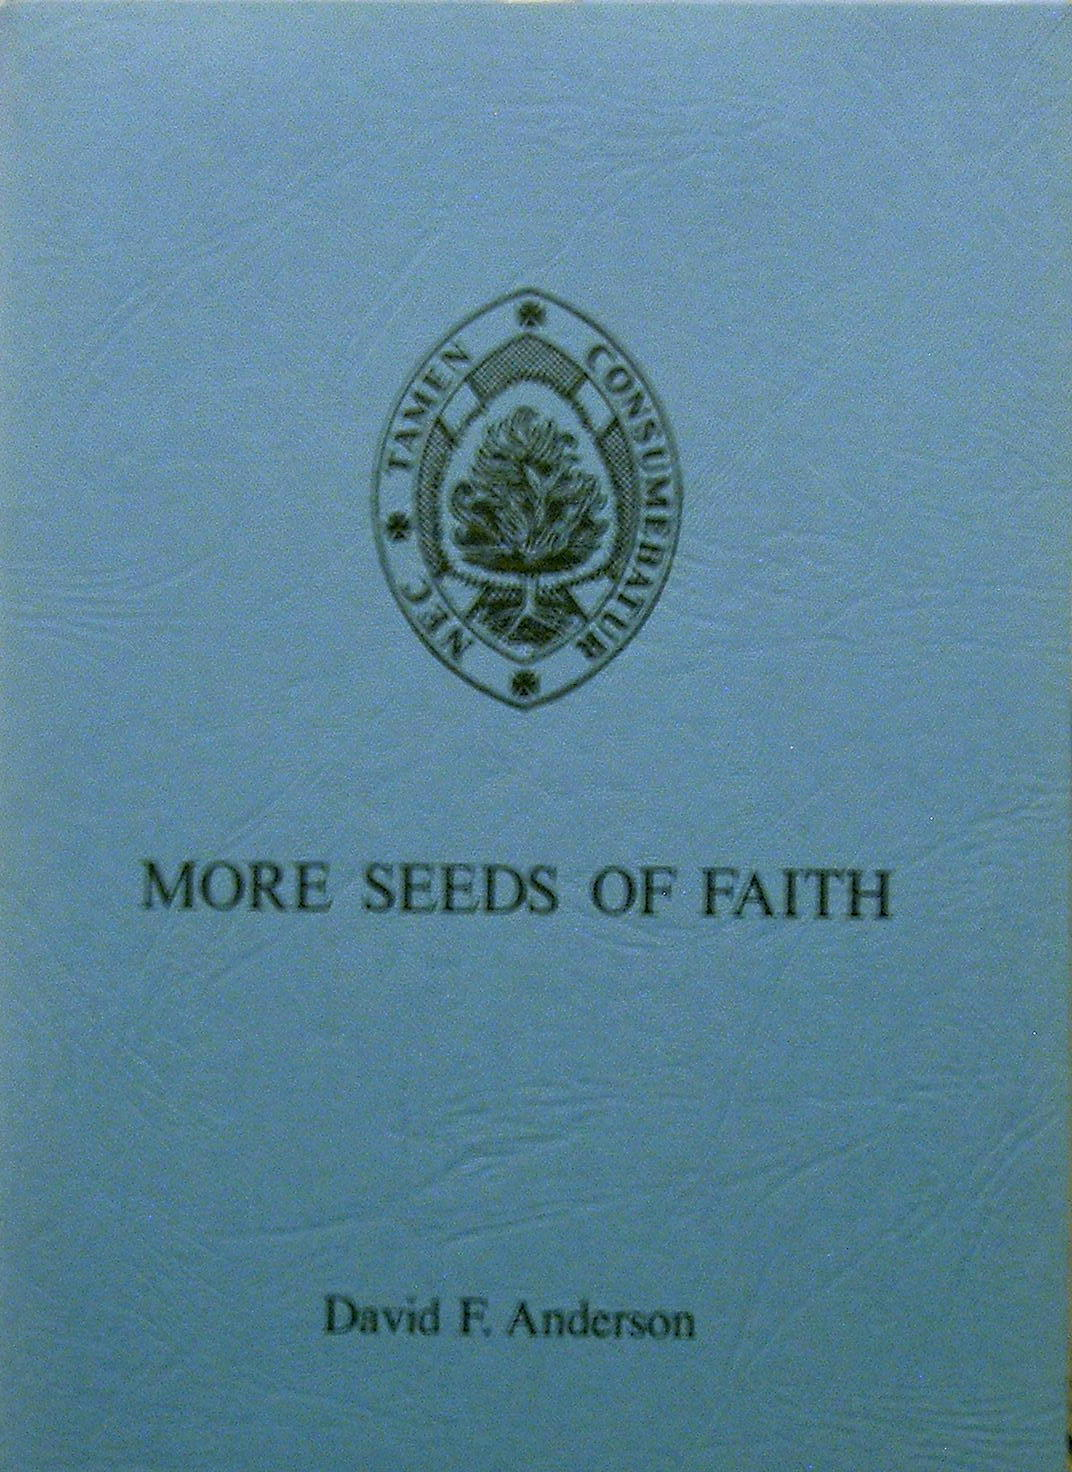 More Seeds of Faith by David F. Anderson